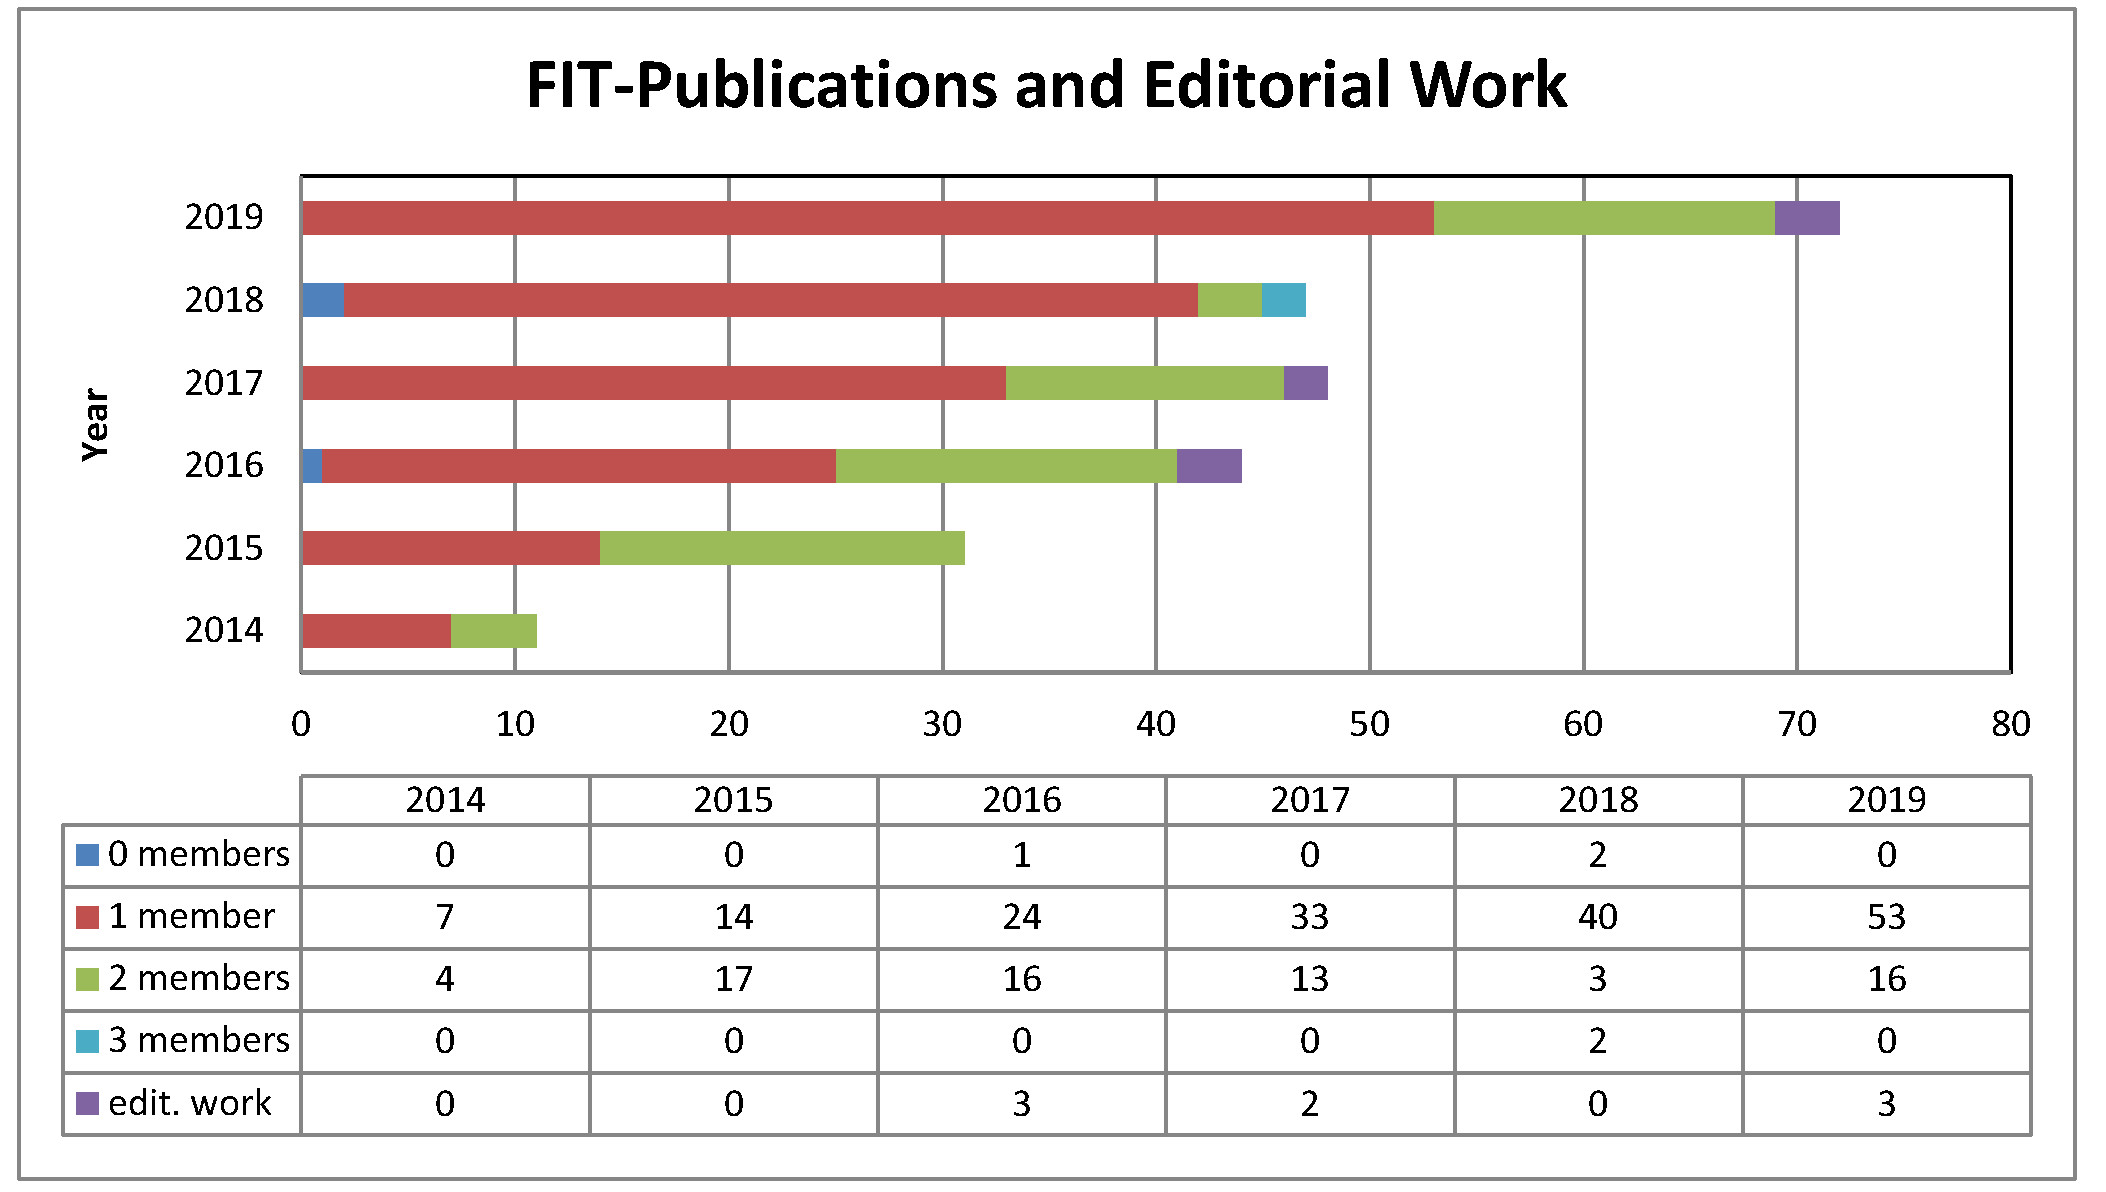 fit publications 2014-2019